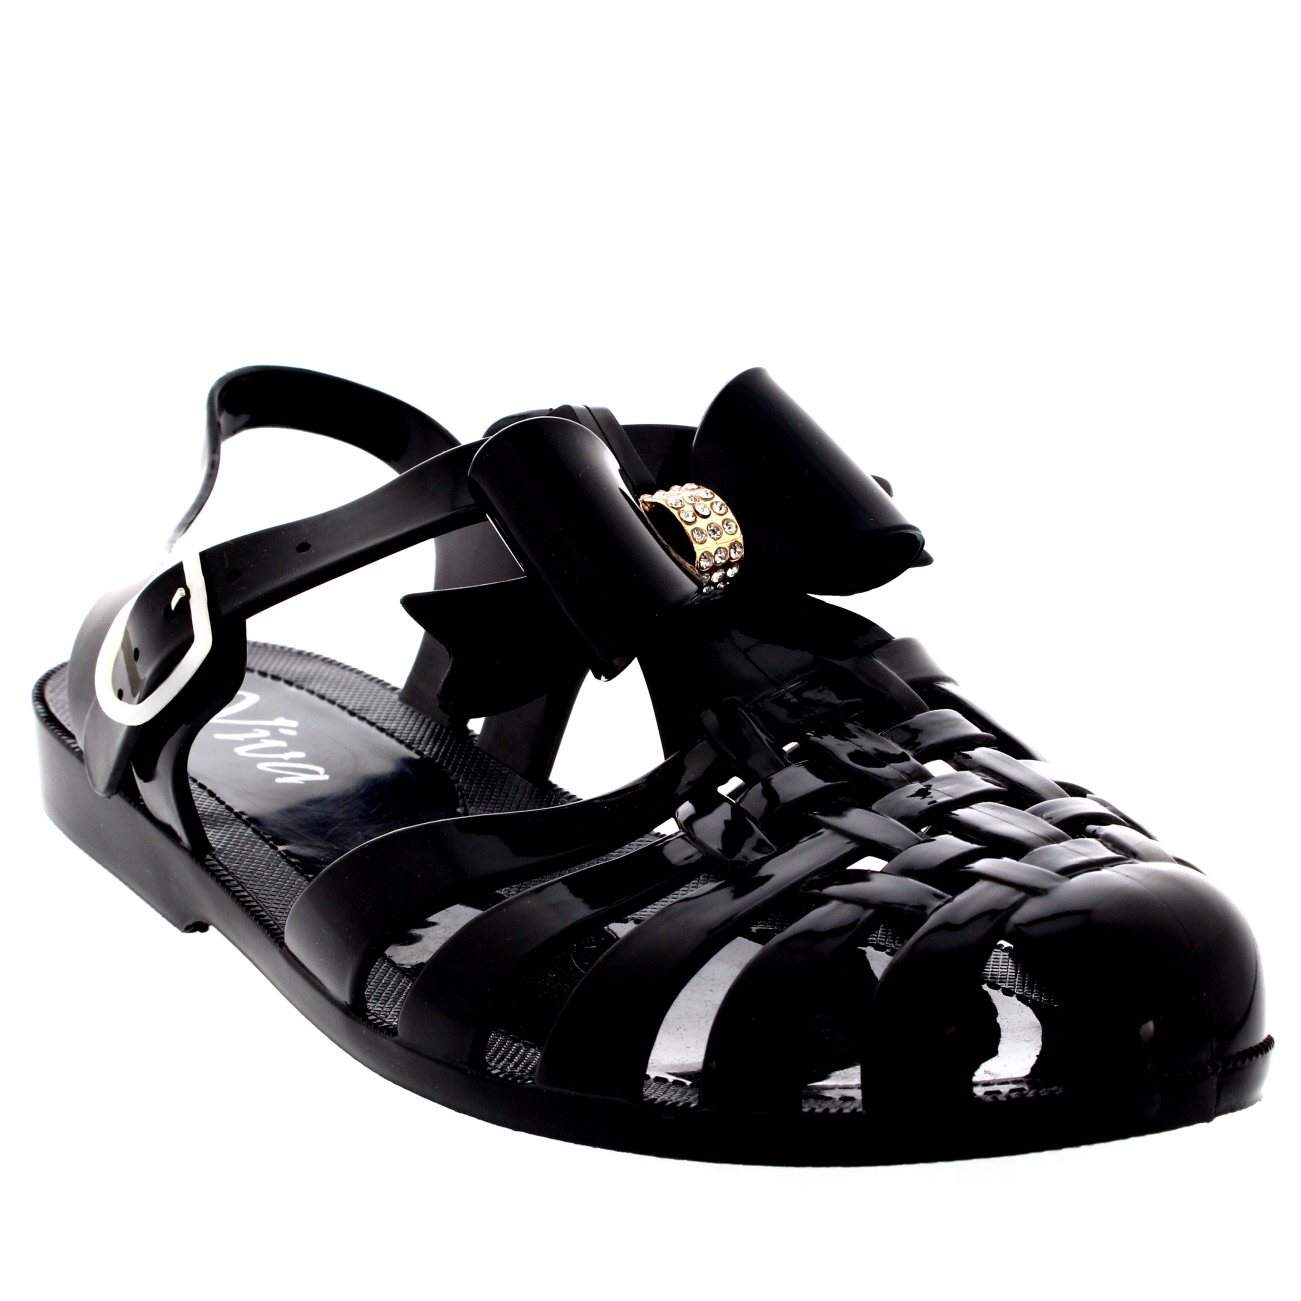 Womens Jelly Shoes Festival Beach Buckle Diamante Bow Gladiator Sandals UK 3-9